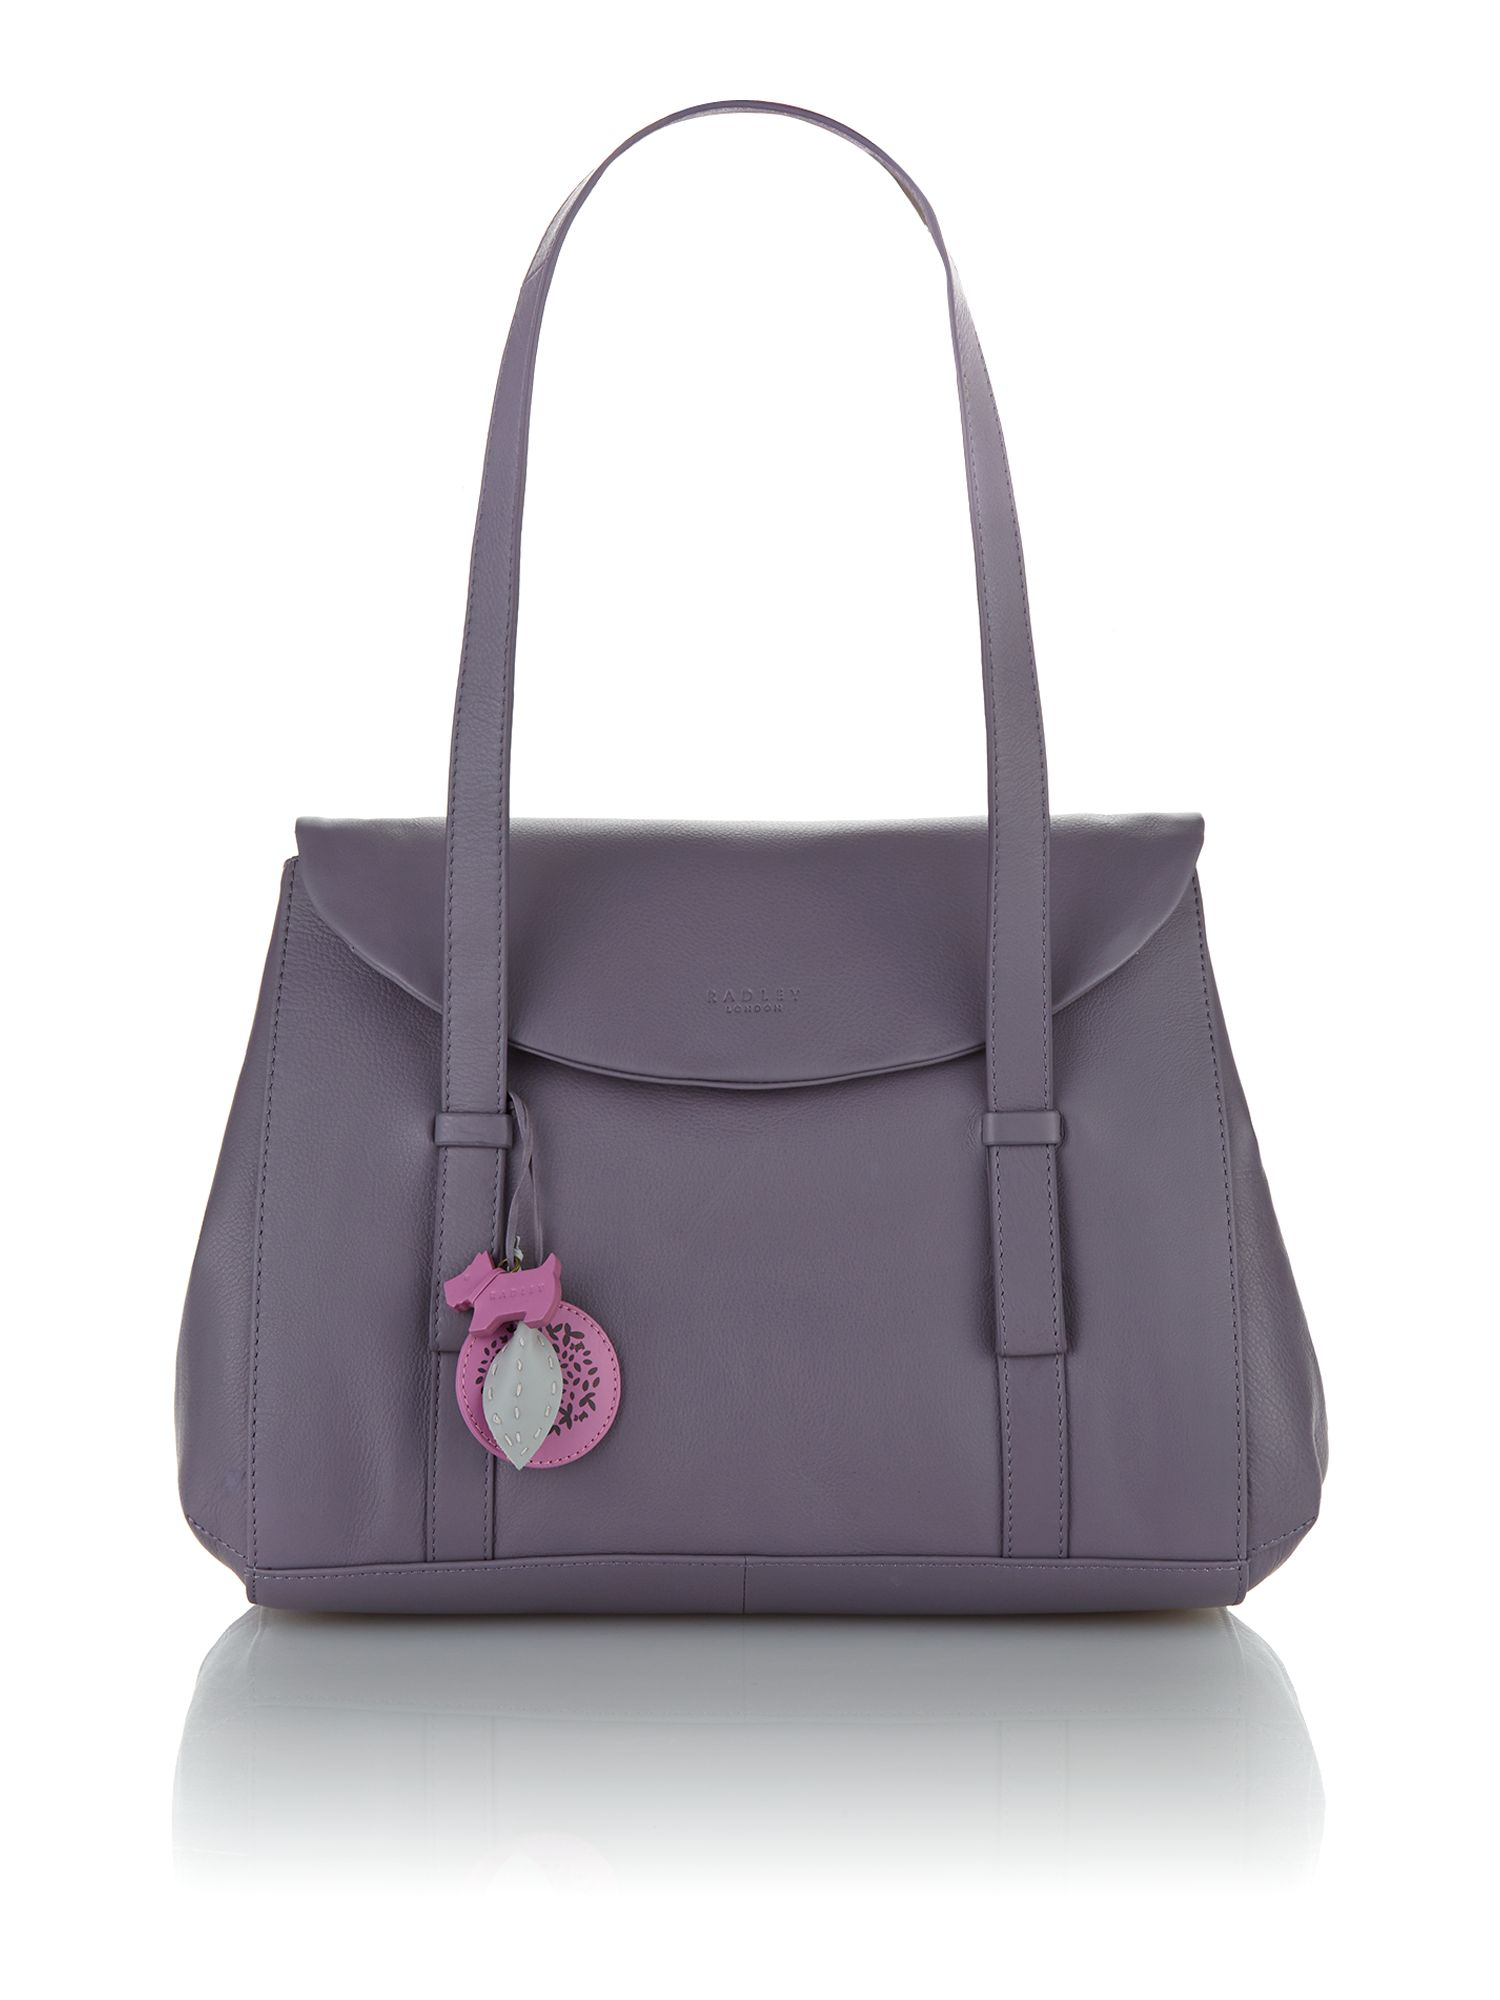 Sherwood purple large flapover tote bag